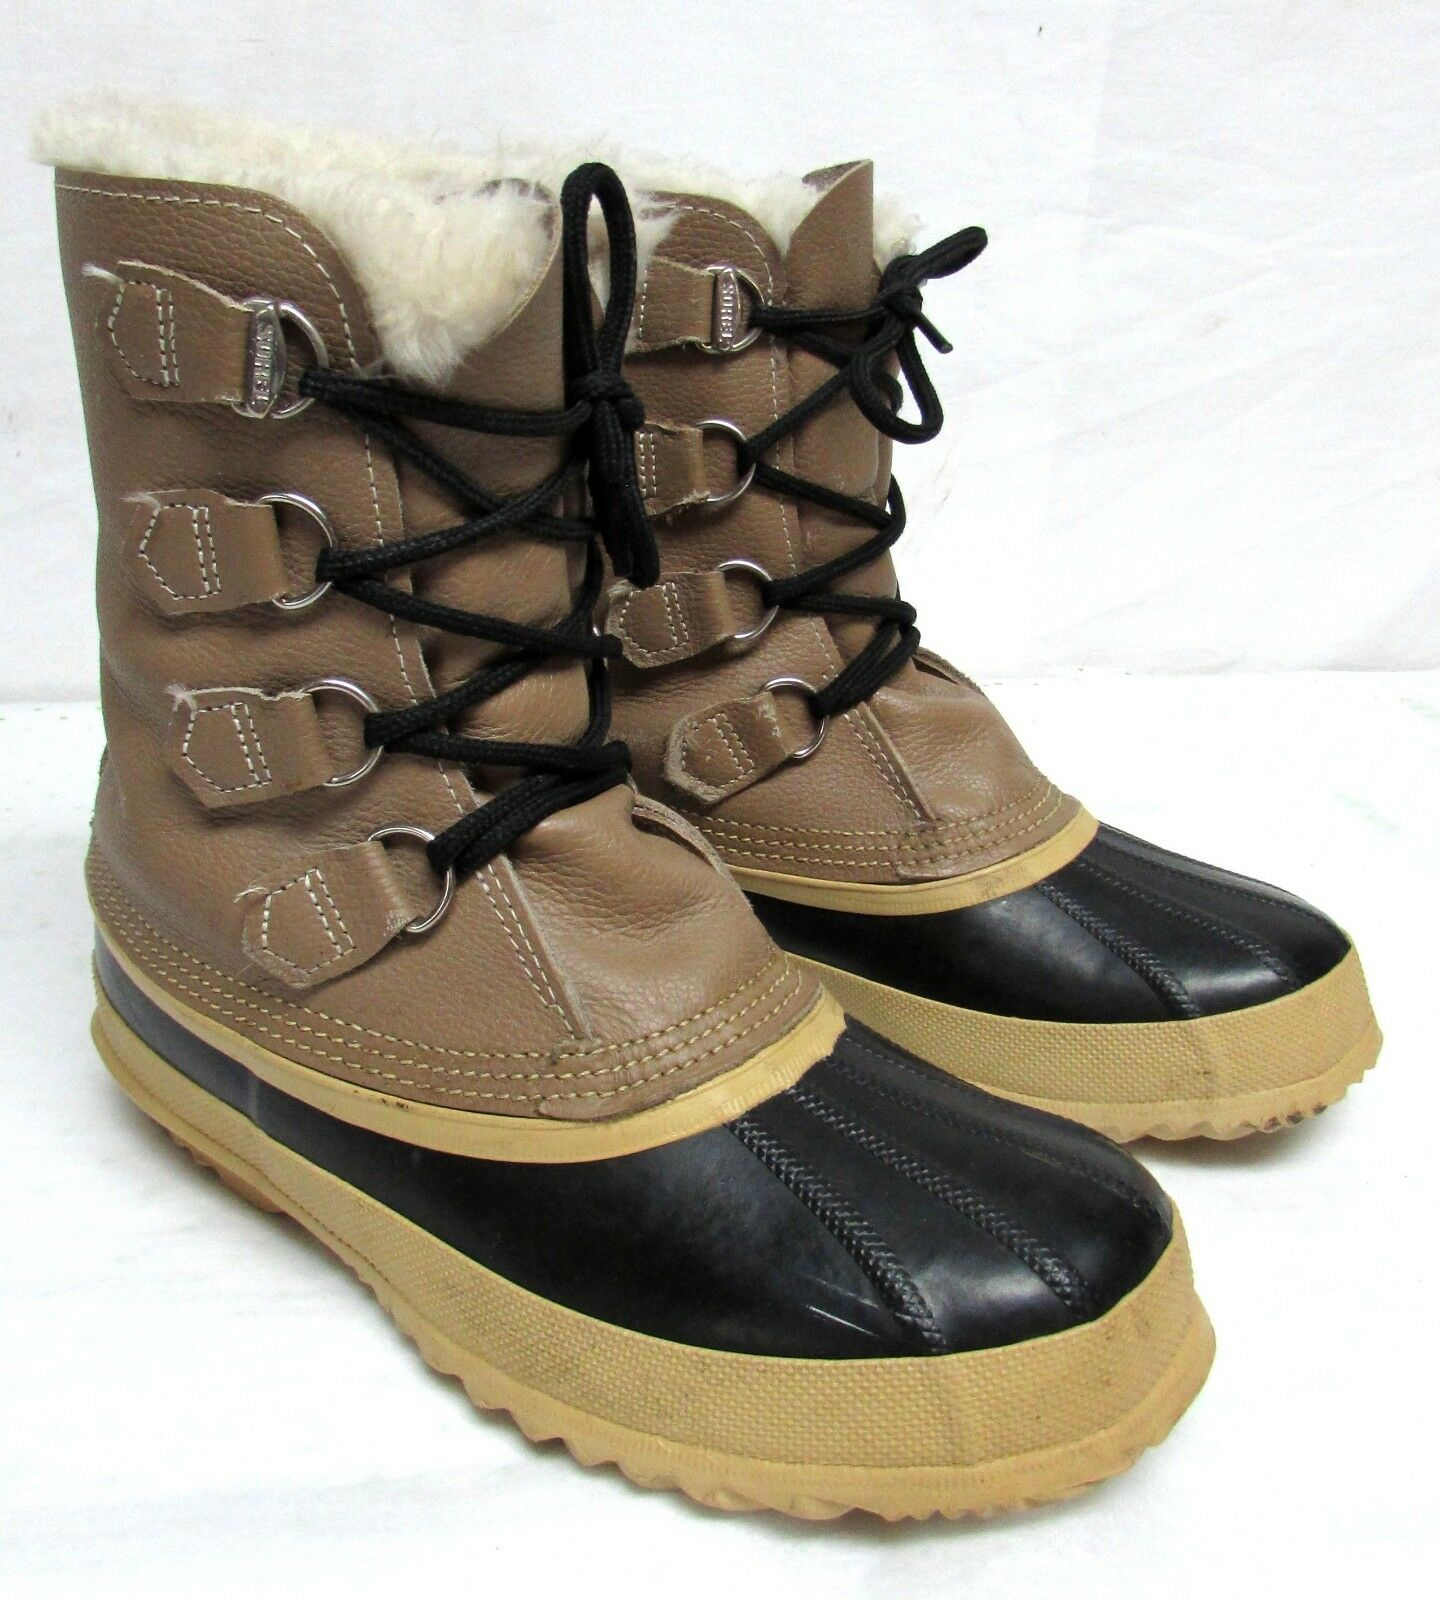 Sorel Damens's Größe 8 rubber and Leder duck Stiefel lined winter